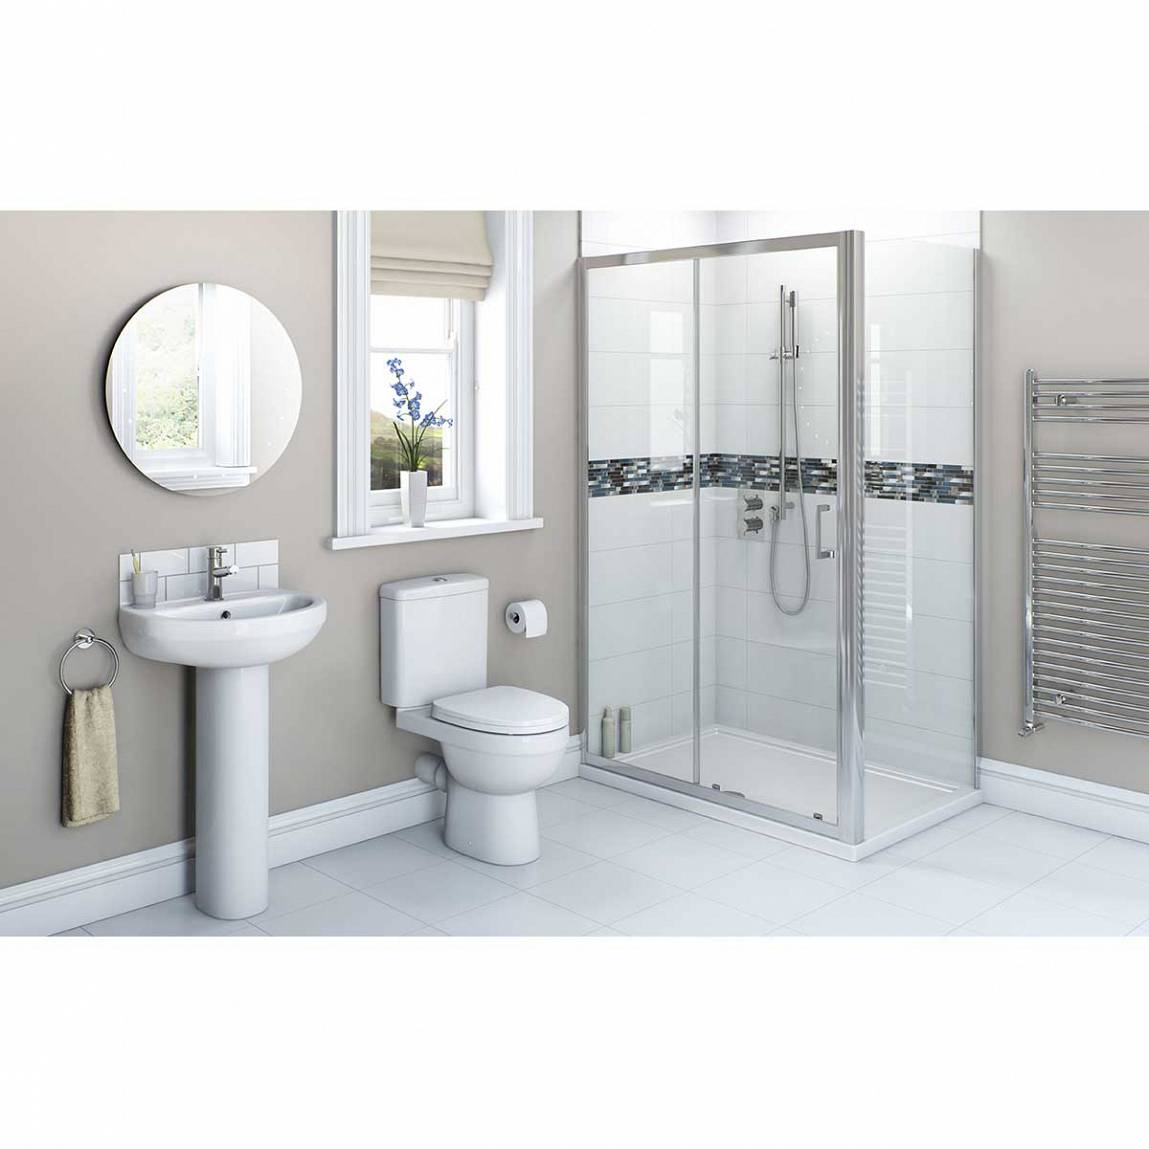 Image of Energy Bathroom set with 1100x900 Sliding Enclosure